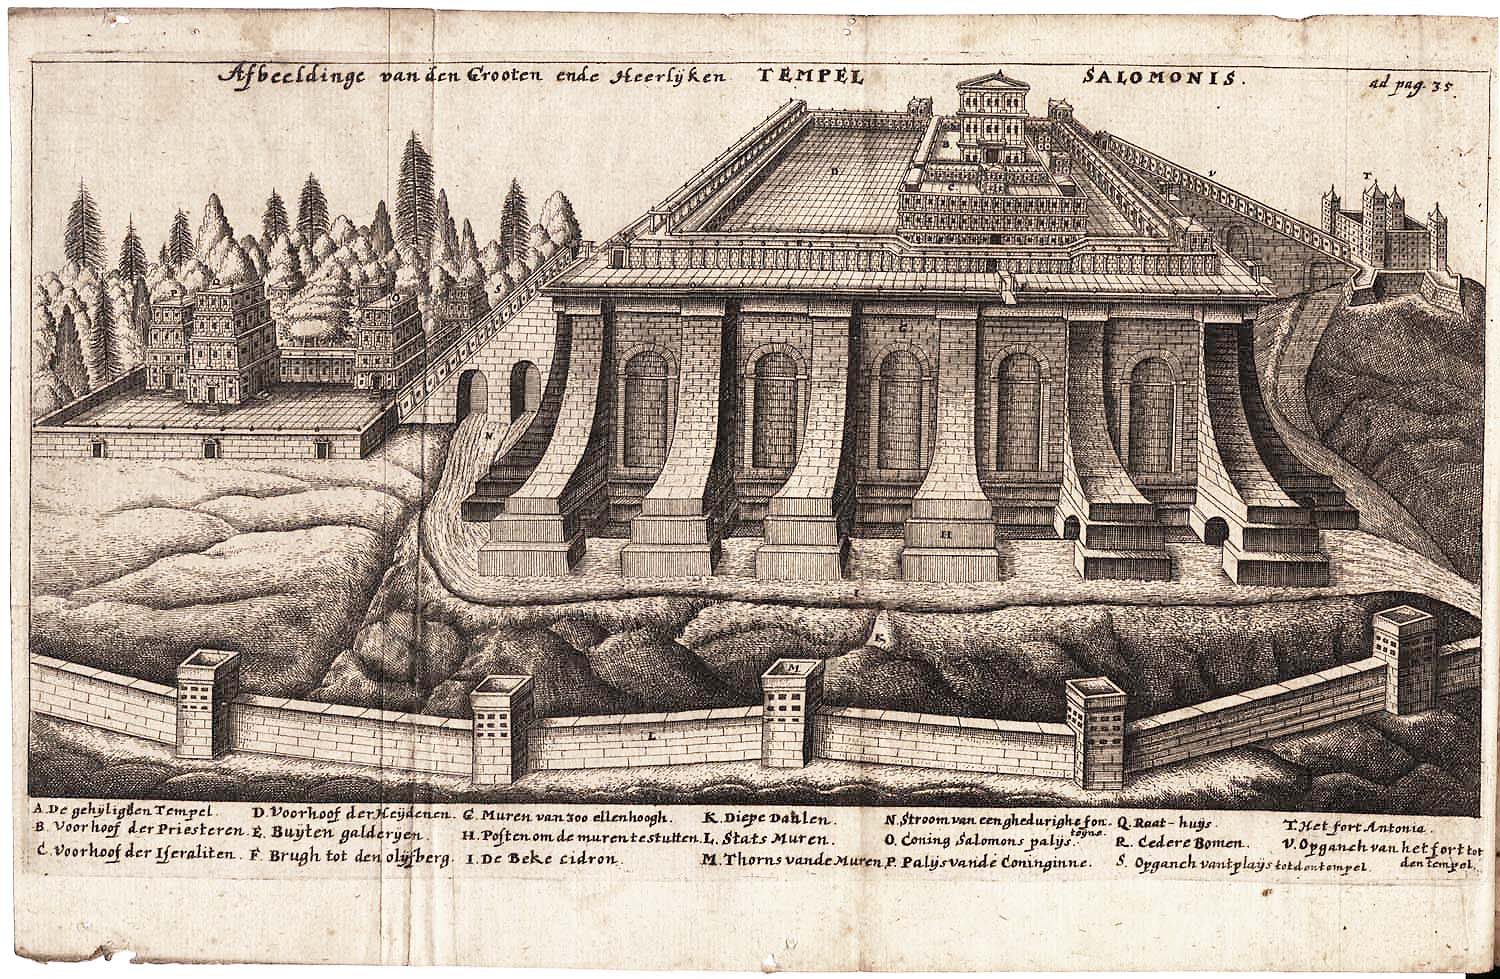 """Engraving of De templo Hierosolymitano from Jacob Judah Leon's book on the subject, published by Johannes Saubertus (Latin Edition), Helmstadt, 1665, engraving, 6.1"""" x 4.3"""", this artwork is in the public domain."""